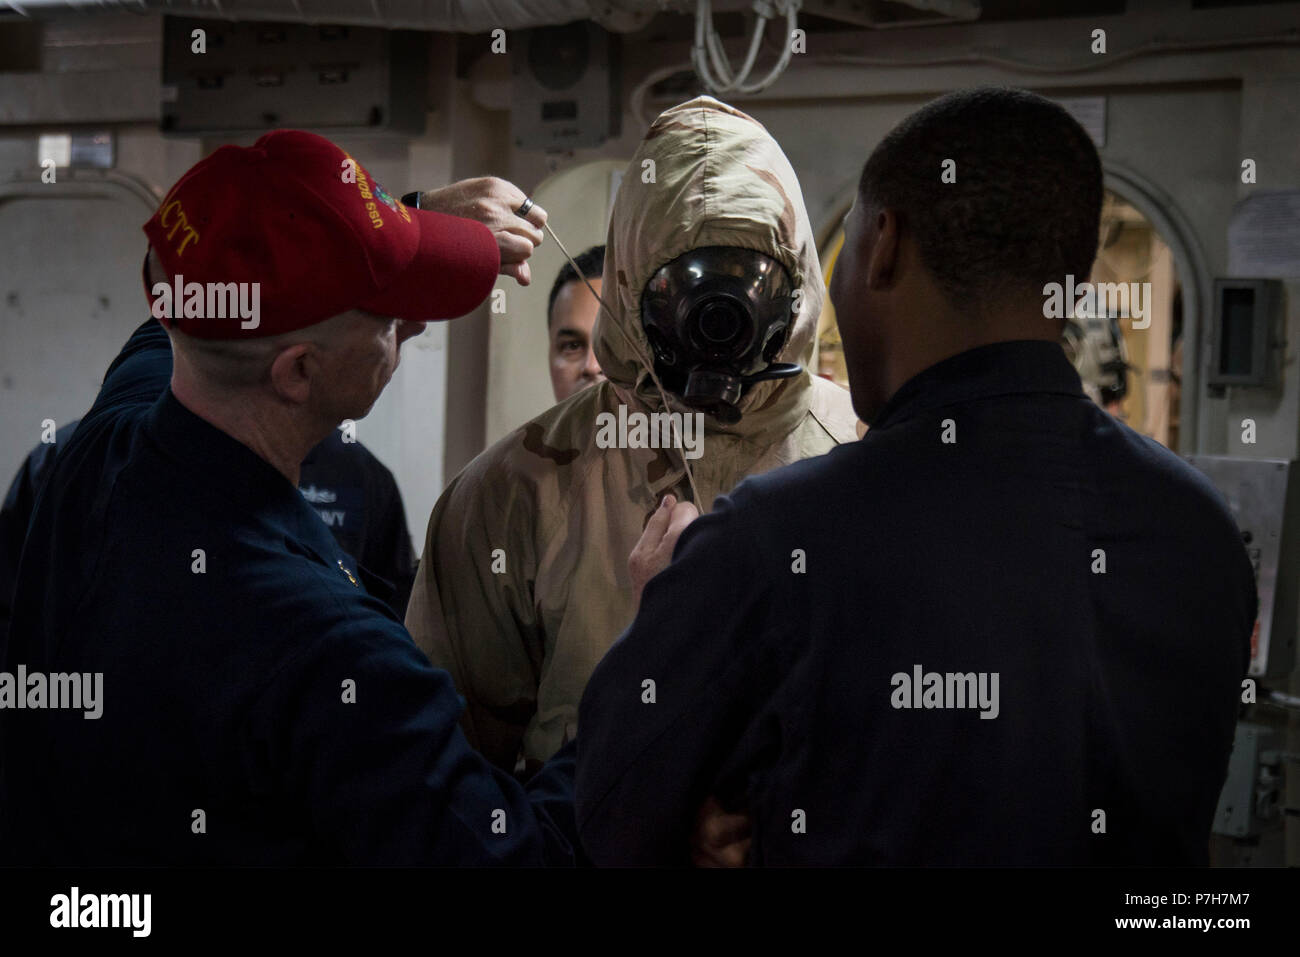 180626-N-WF272-100 SAN DIEGO (June 26, 2018) Senior Chief Culinary Specialist Anthony Hooper, left, and Ship's Serviceman Seaman Jaylan Eady, right, from Whiteville, N.C., help Logistics Specialist 2nd Class Donald Eugene, from Miami, don a chemical, biological and radiological (CBR) overgarment during a CBR training exercise aboard the amphibious assault ship USS Bonhomme Richard (LHD 6). Bonhomme Richard is currently in its homeport of San Diego, preparing for an upcoming scheduled deployment. (U.S. Navy photo by Mass Communication Specialist 1st Class Diana Quinlan/Released) - Stock Image